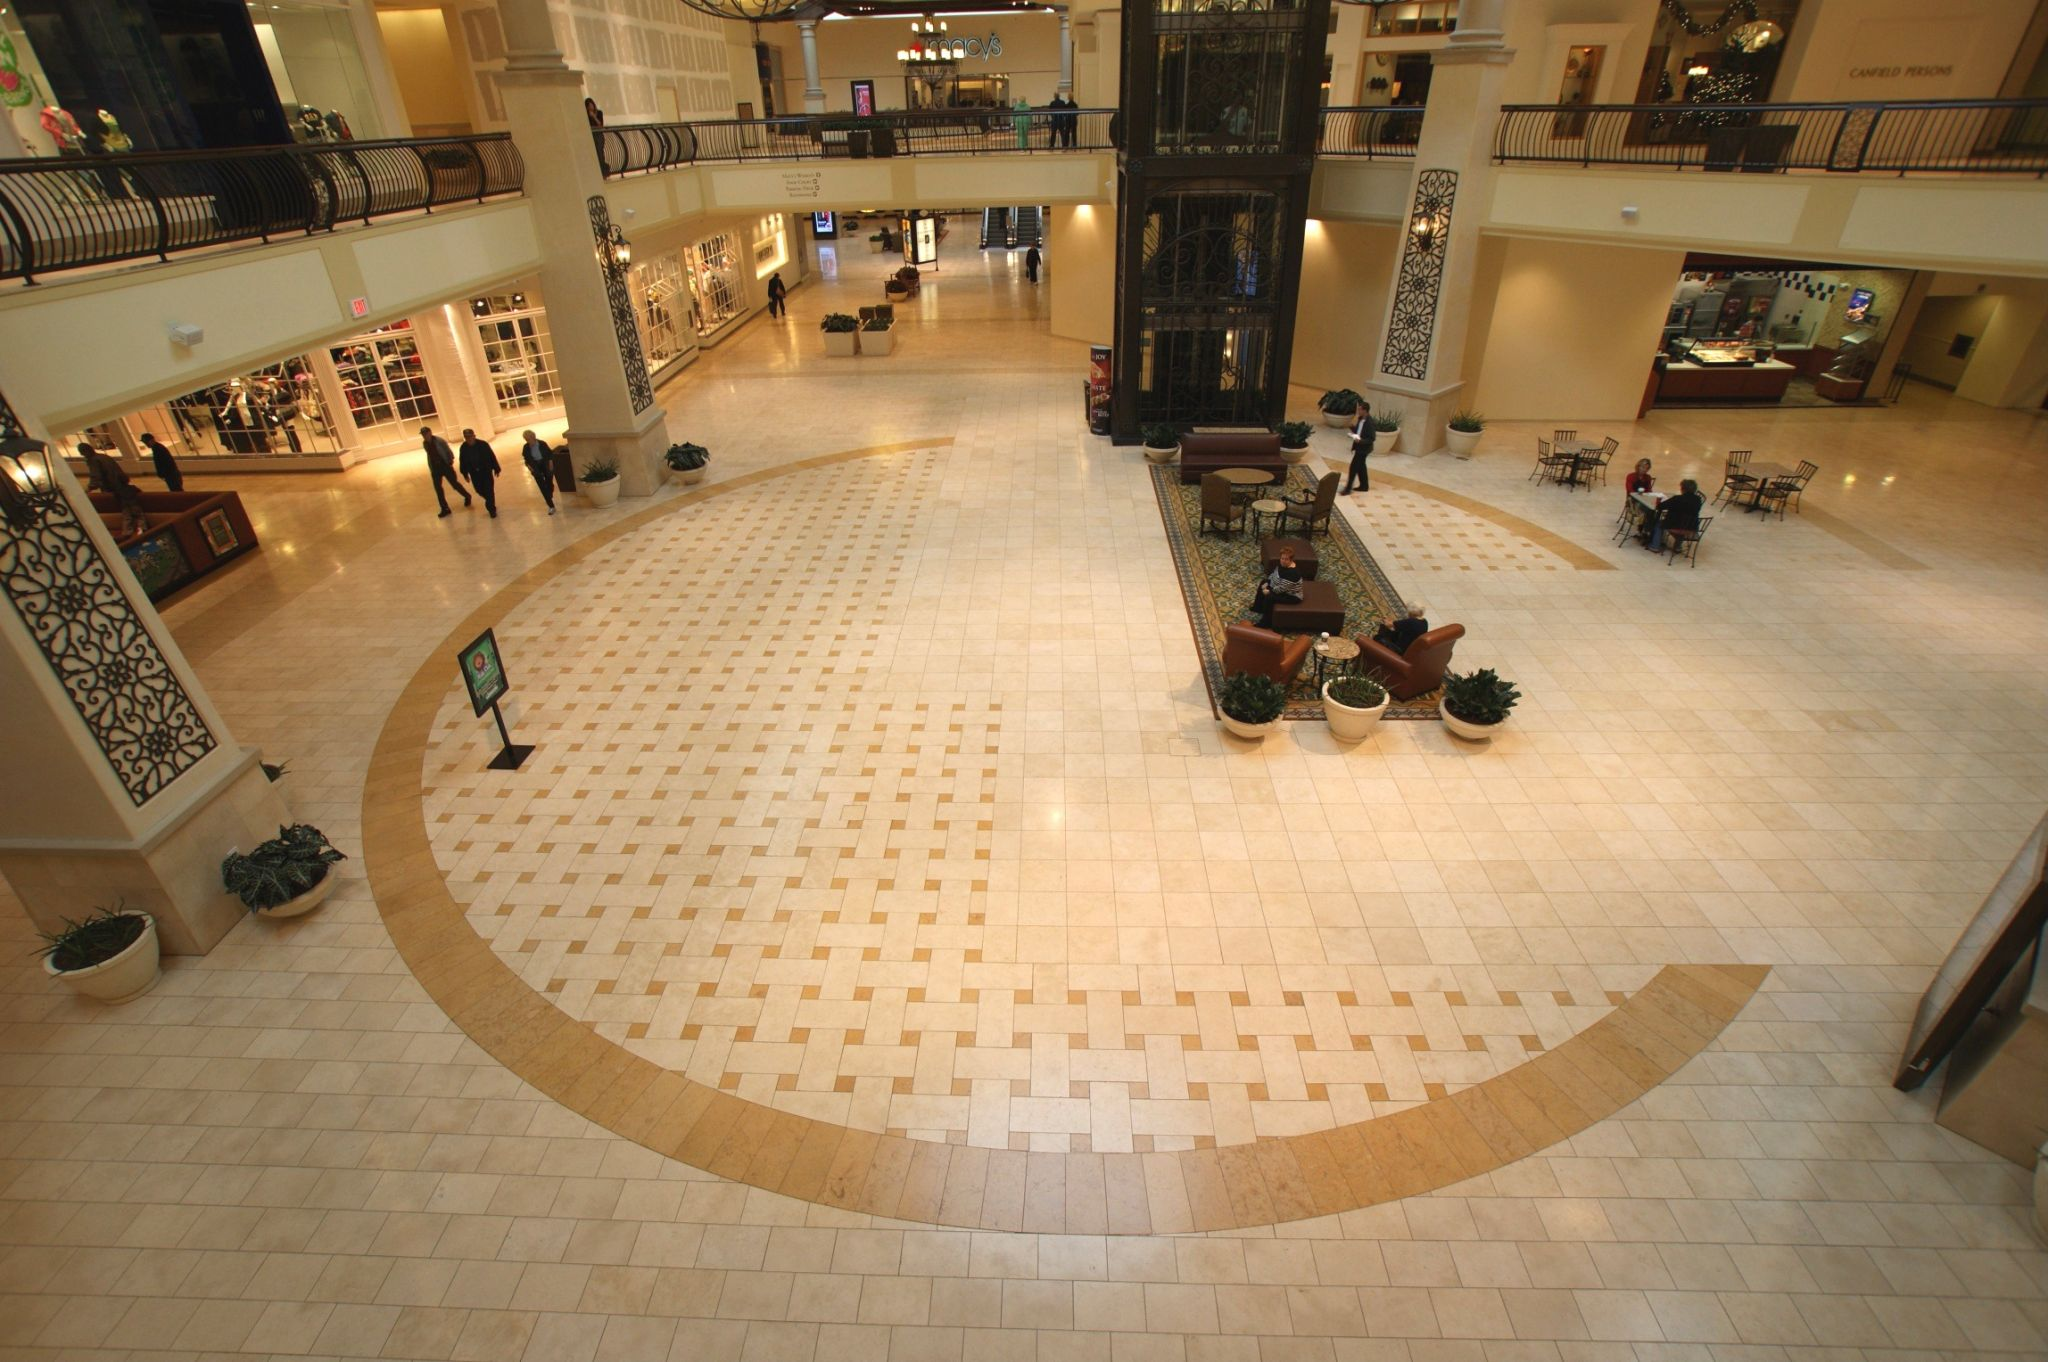 This creative pattern of different limestone tile colours and sizes was installed on fl oors at the Oaks Hill Mall in California by Premier Tile & Marble Company.